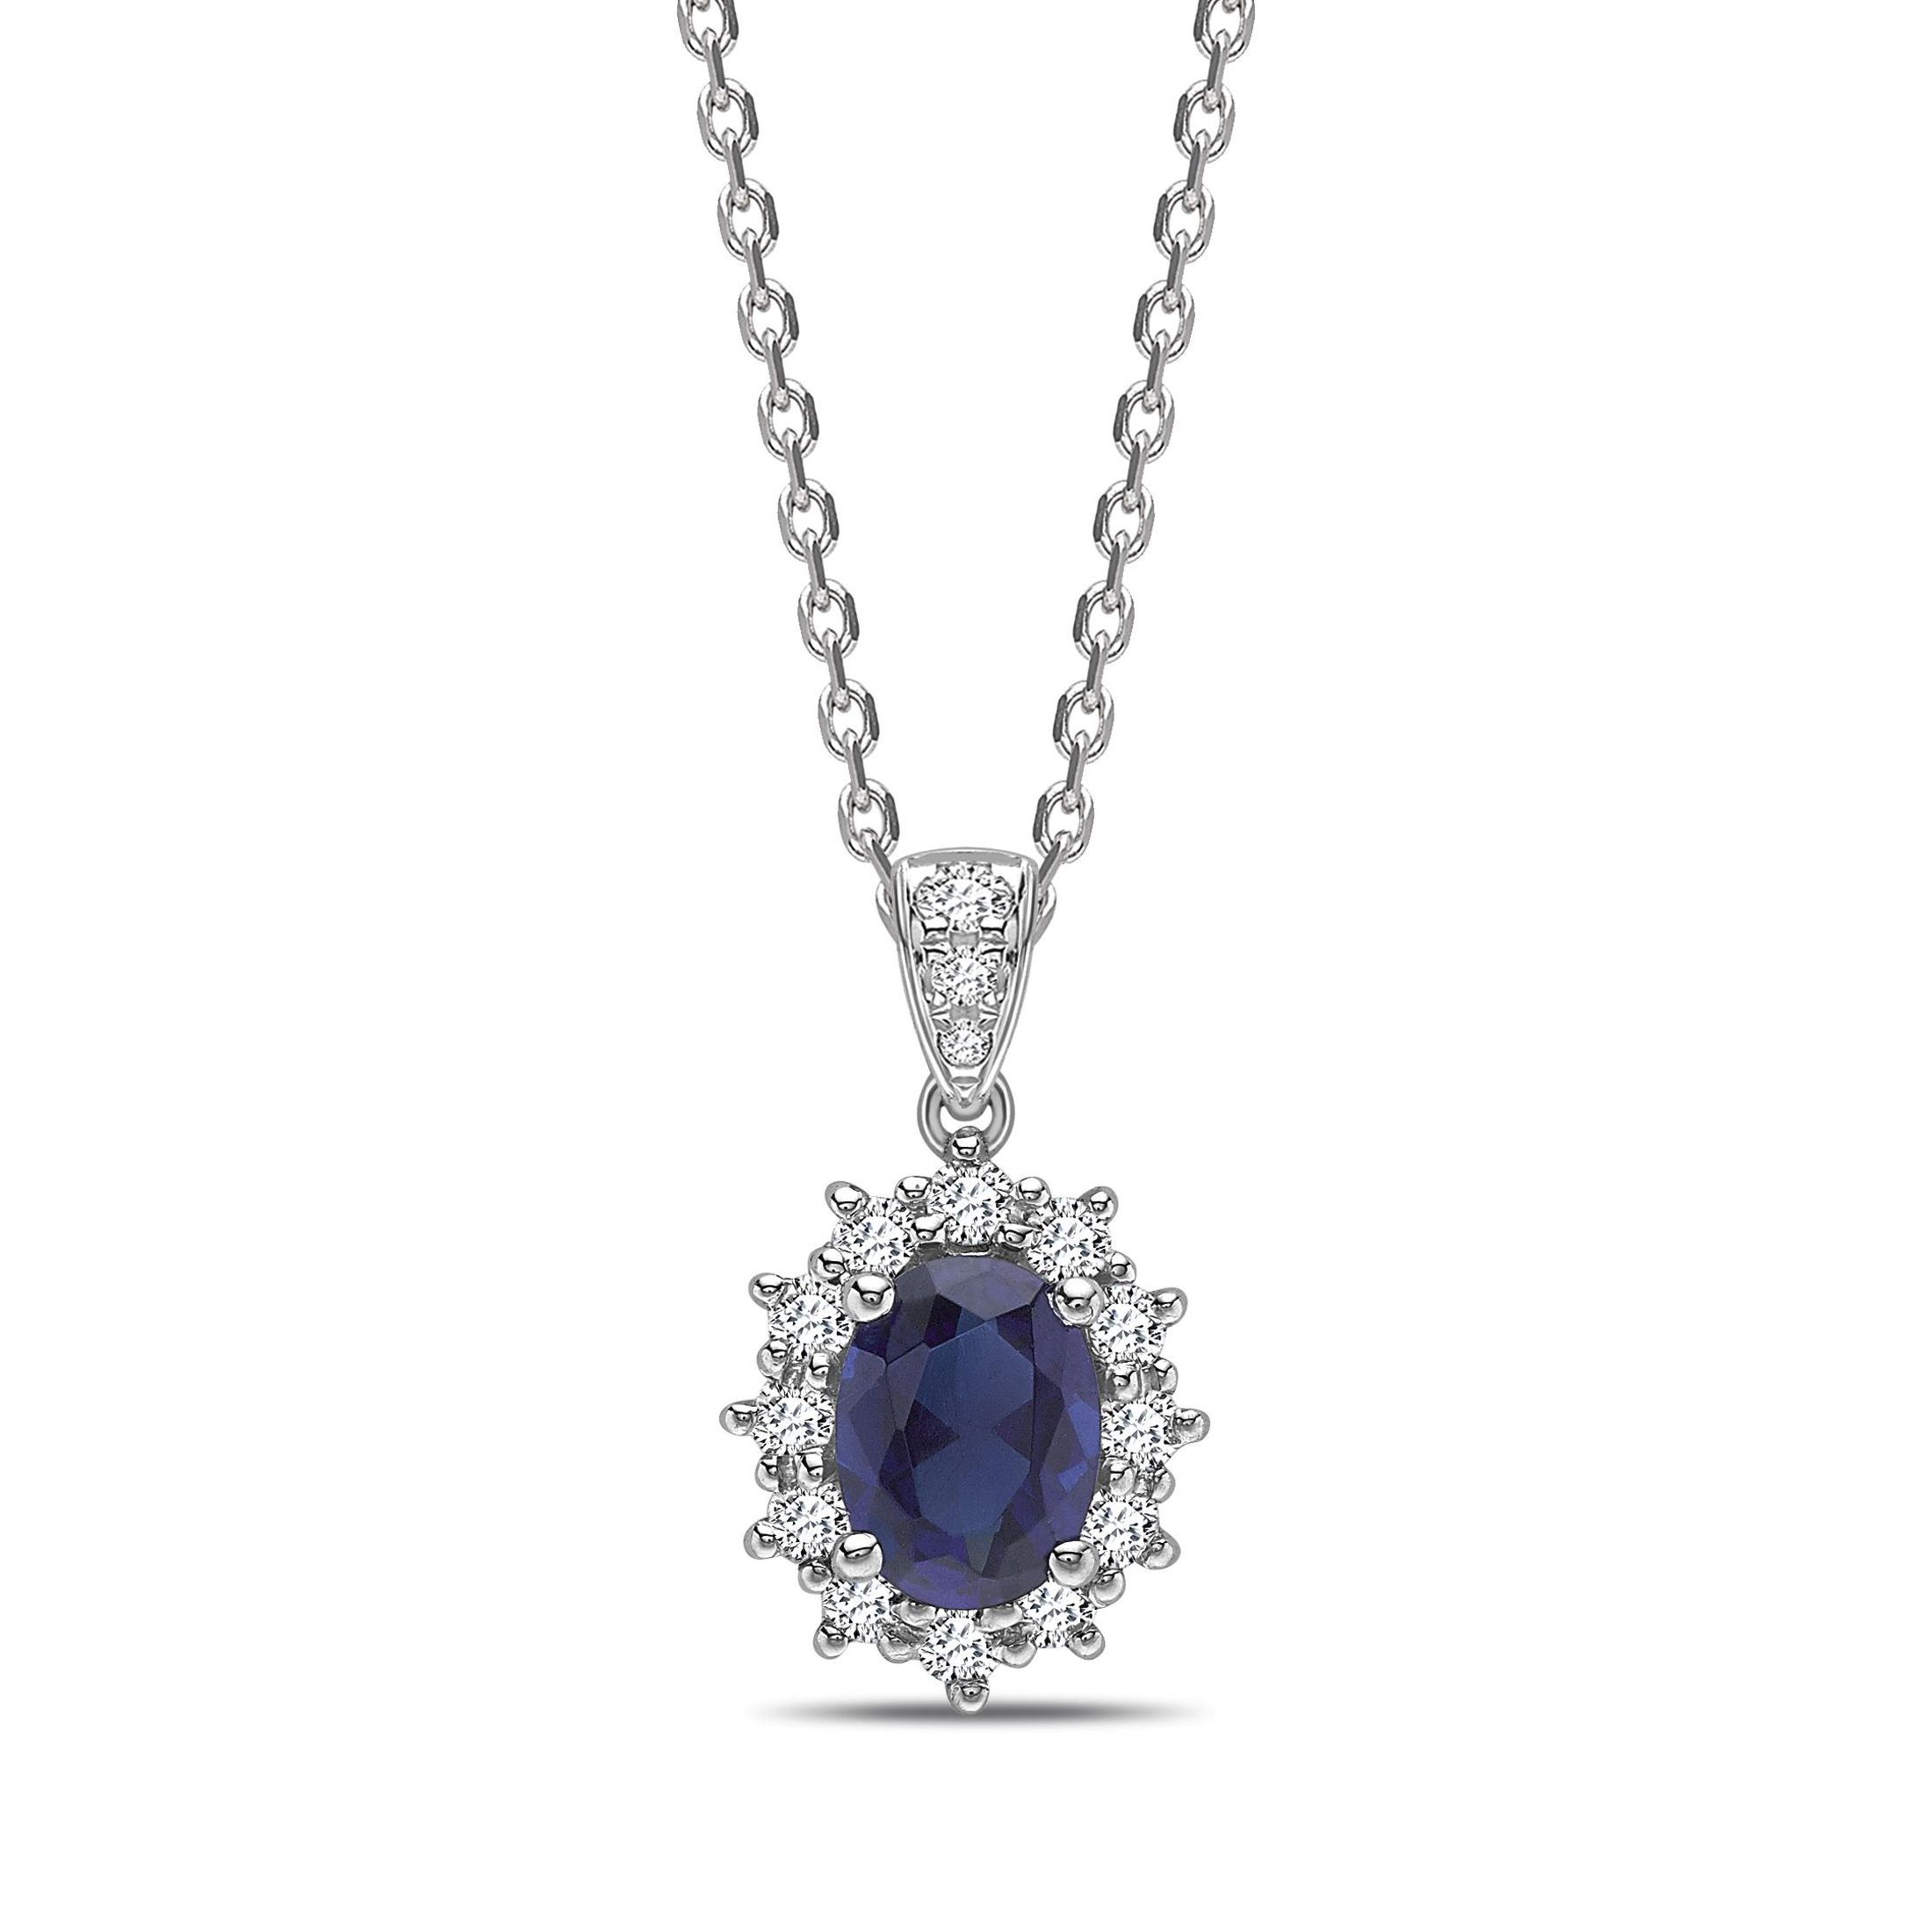 Star Halo Dangling Oval Shape Halo Diamond Pendant Necklace